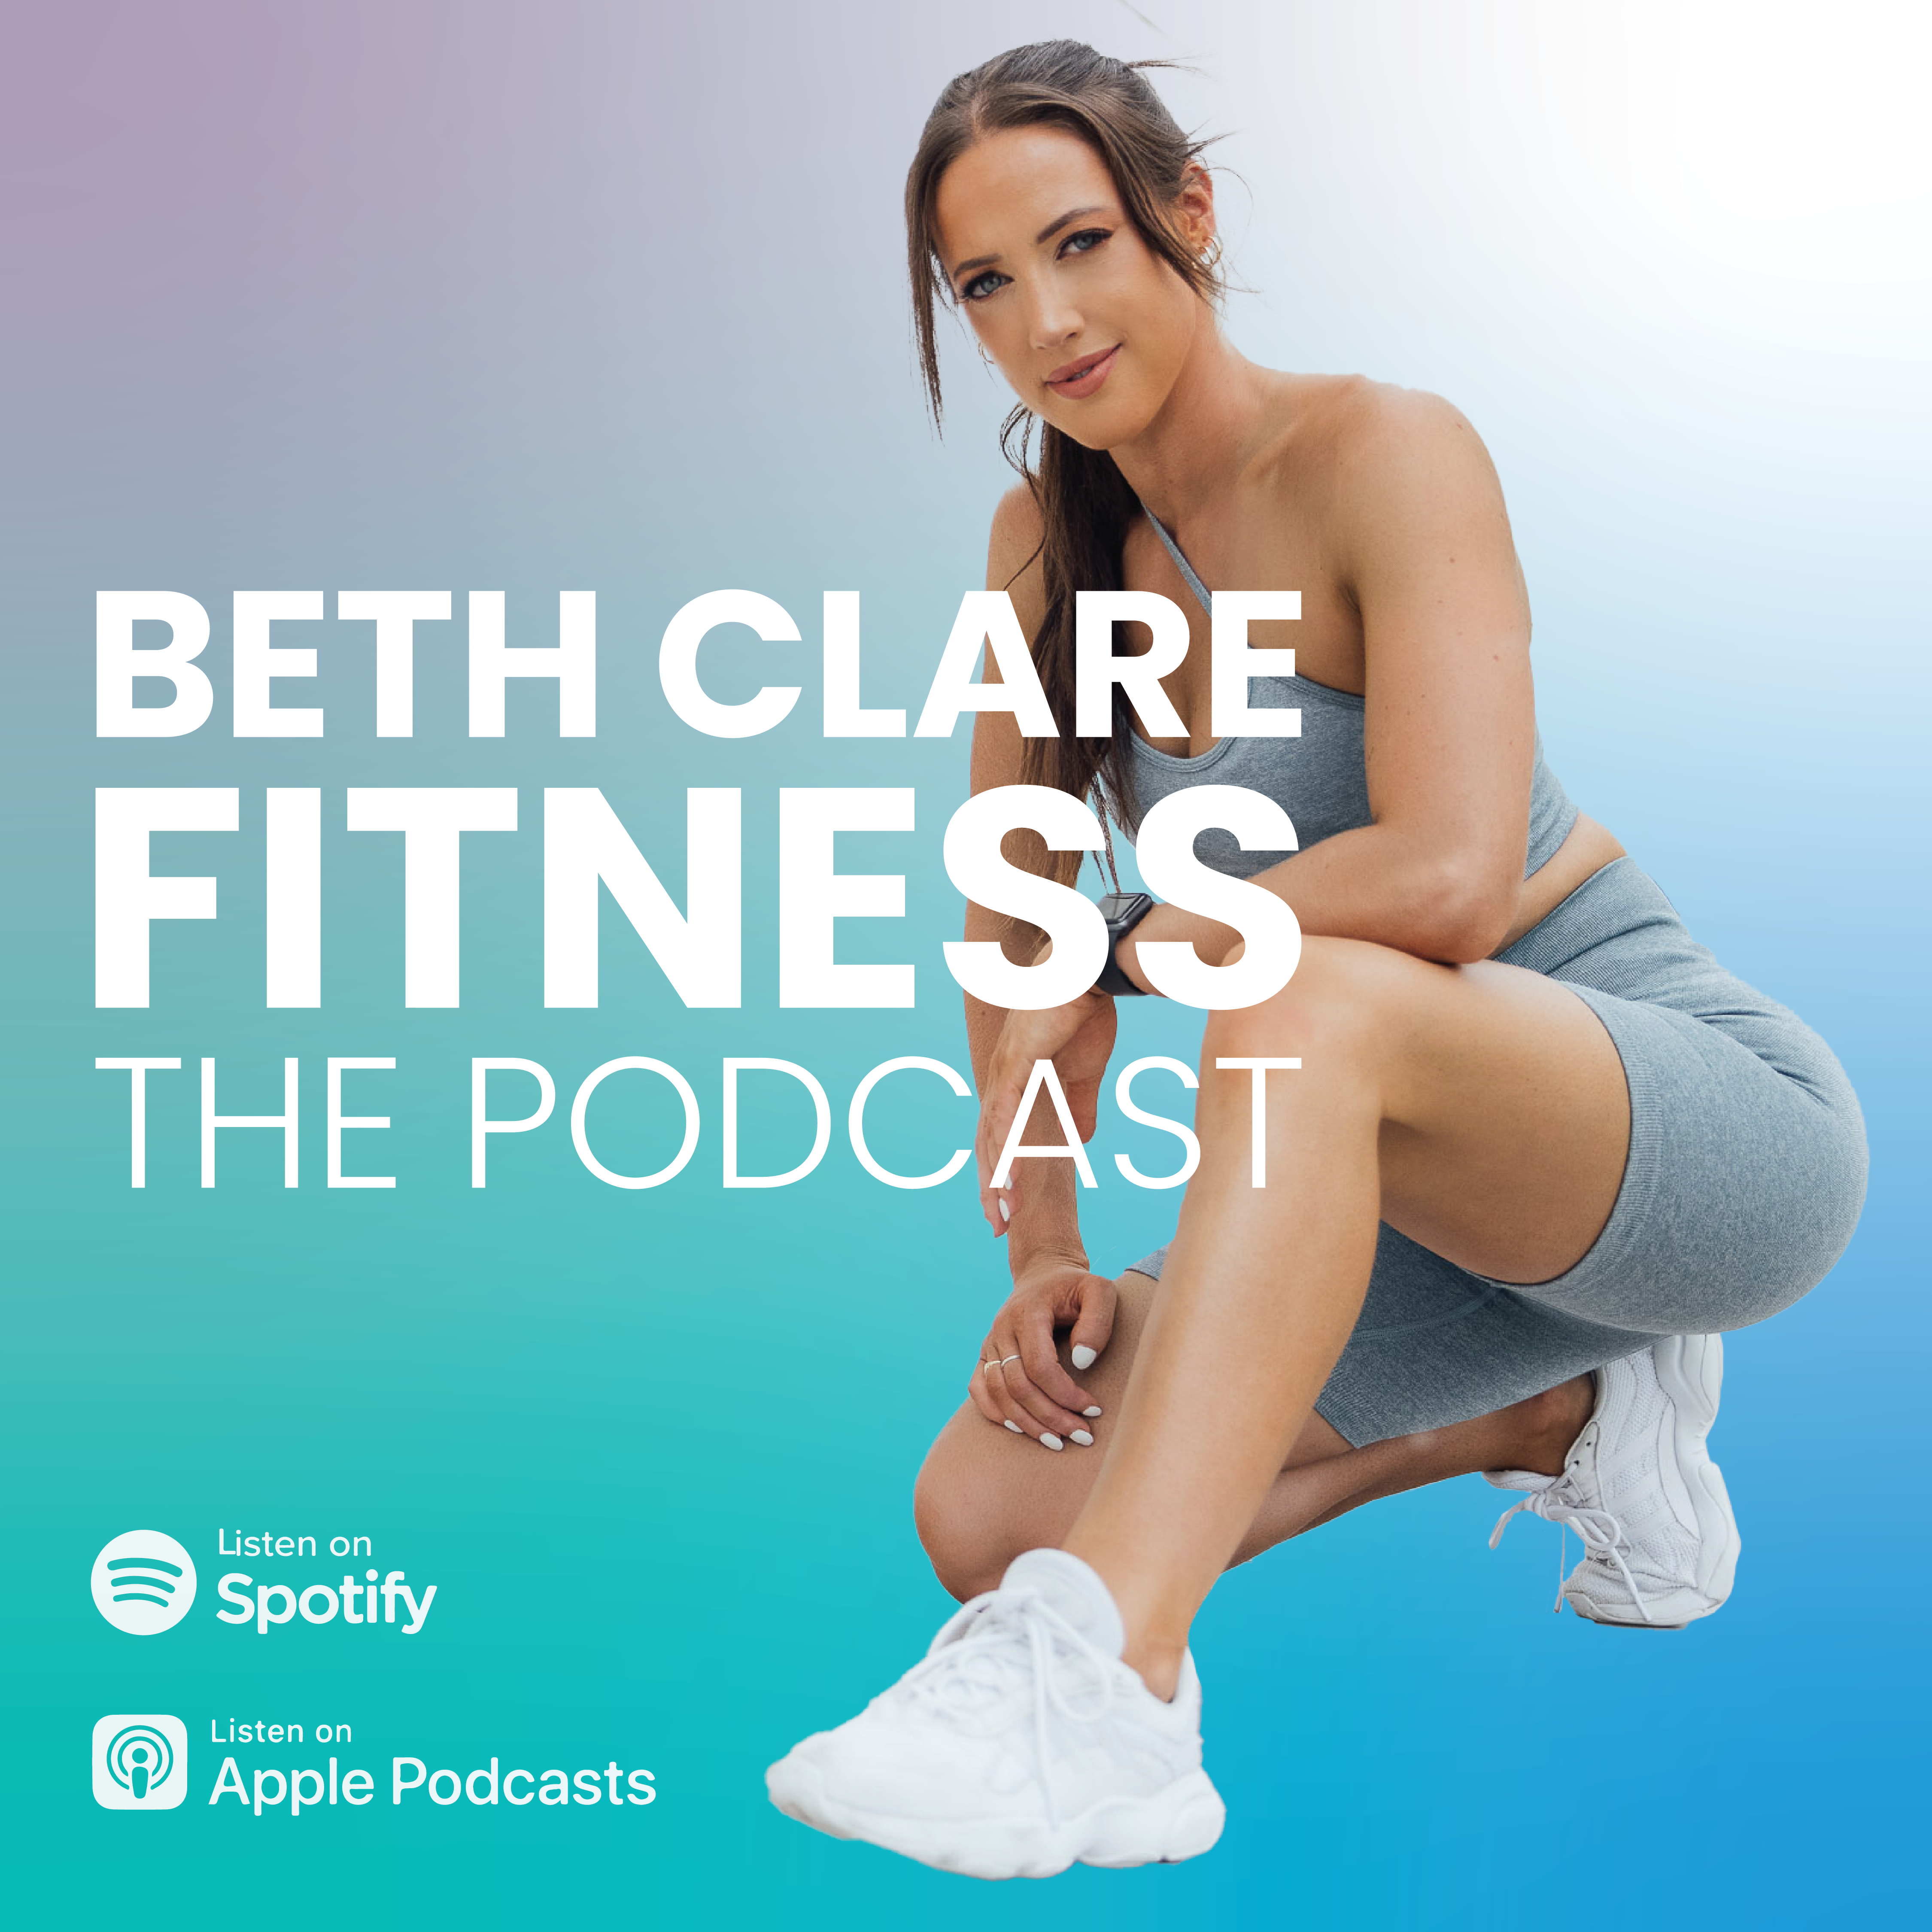 Beth Clare Fitness The Podcast show art